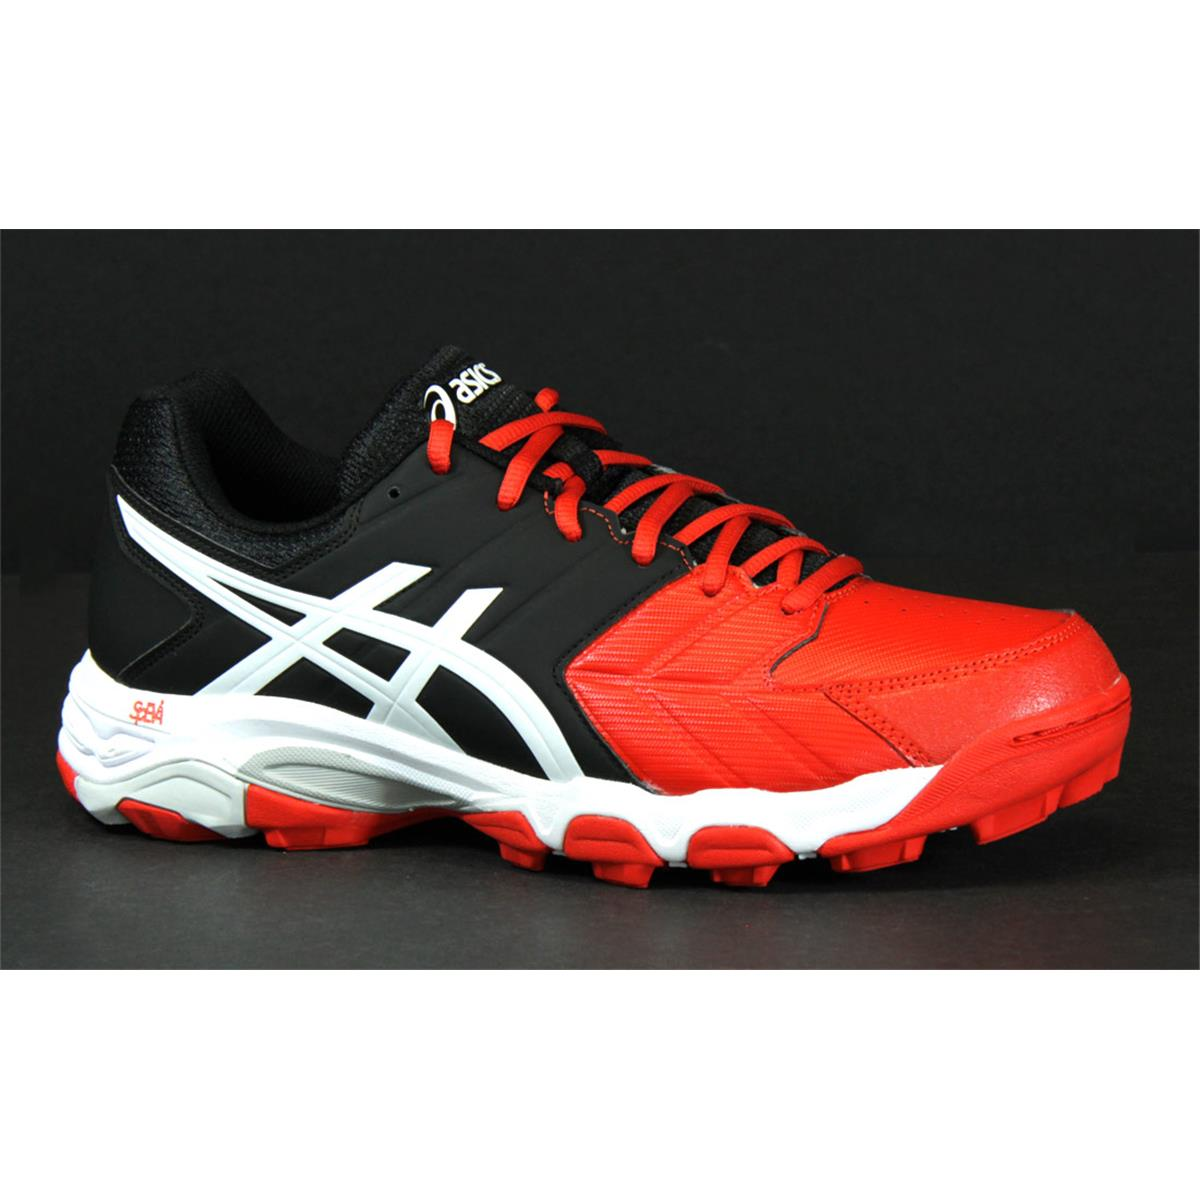 Asics Gel Blackheath 6